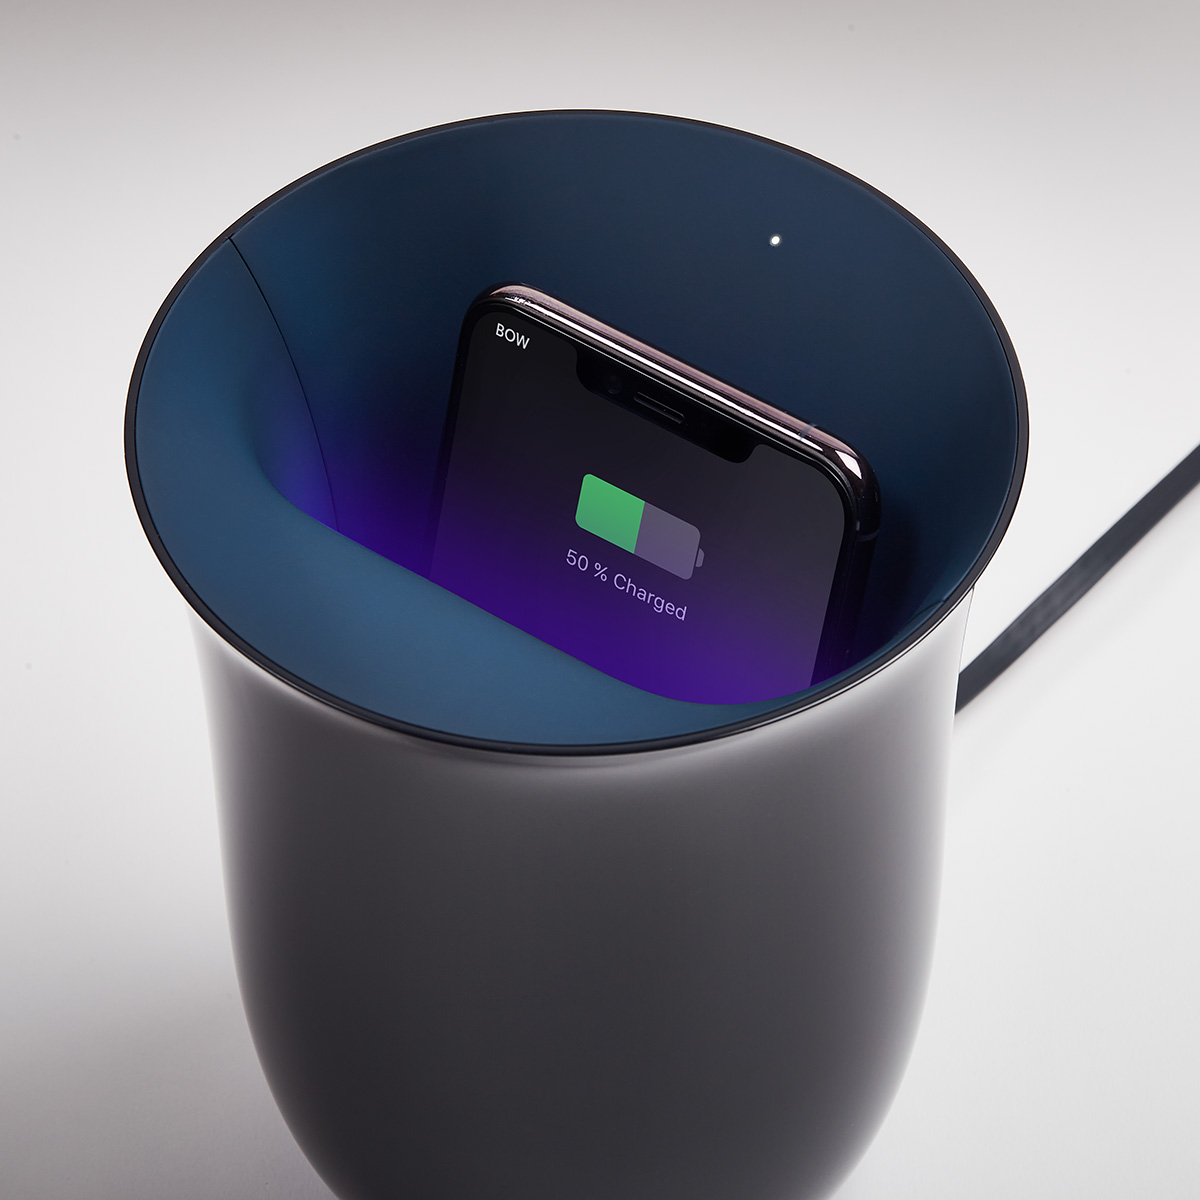 Sanitize your phone while charging with the Oblio Wireless Charging Station with UV Sanitizer